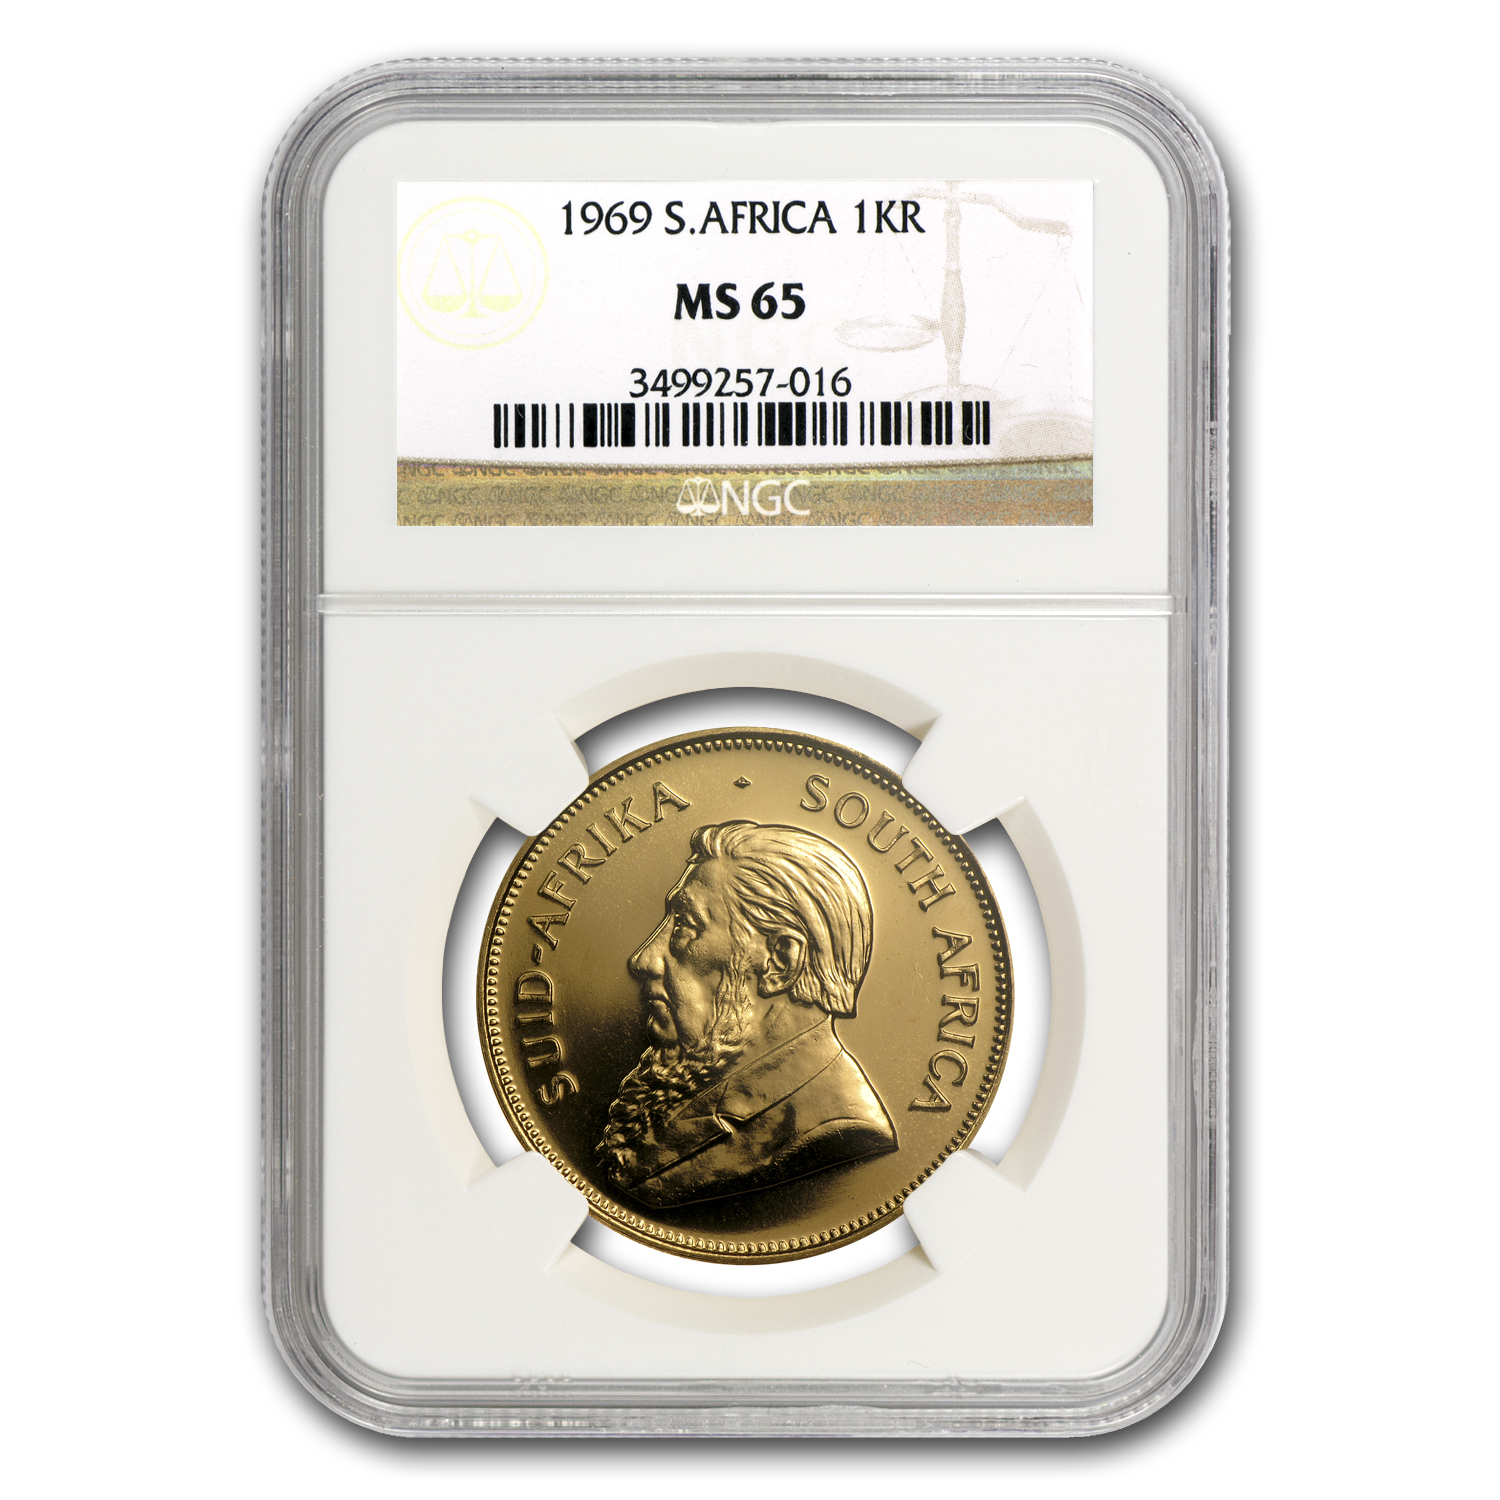 1969 1 oz Gold South African Krugerrand MS-65 NGC